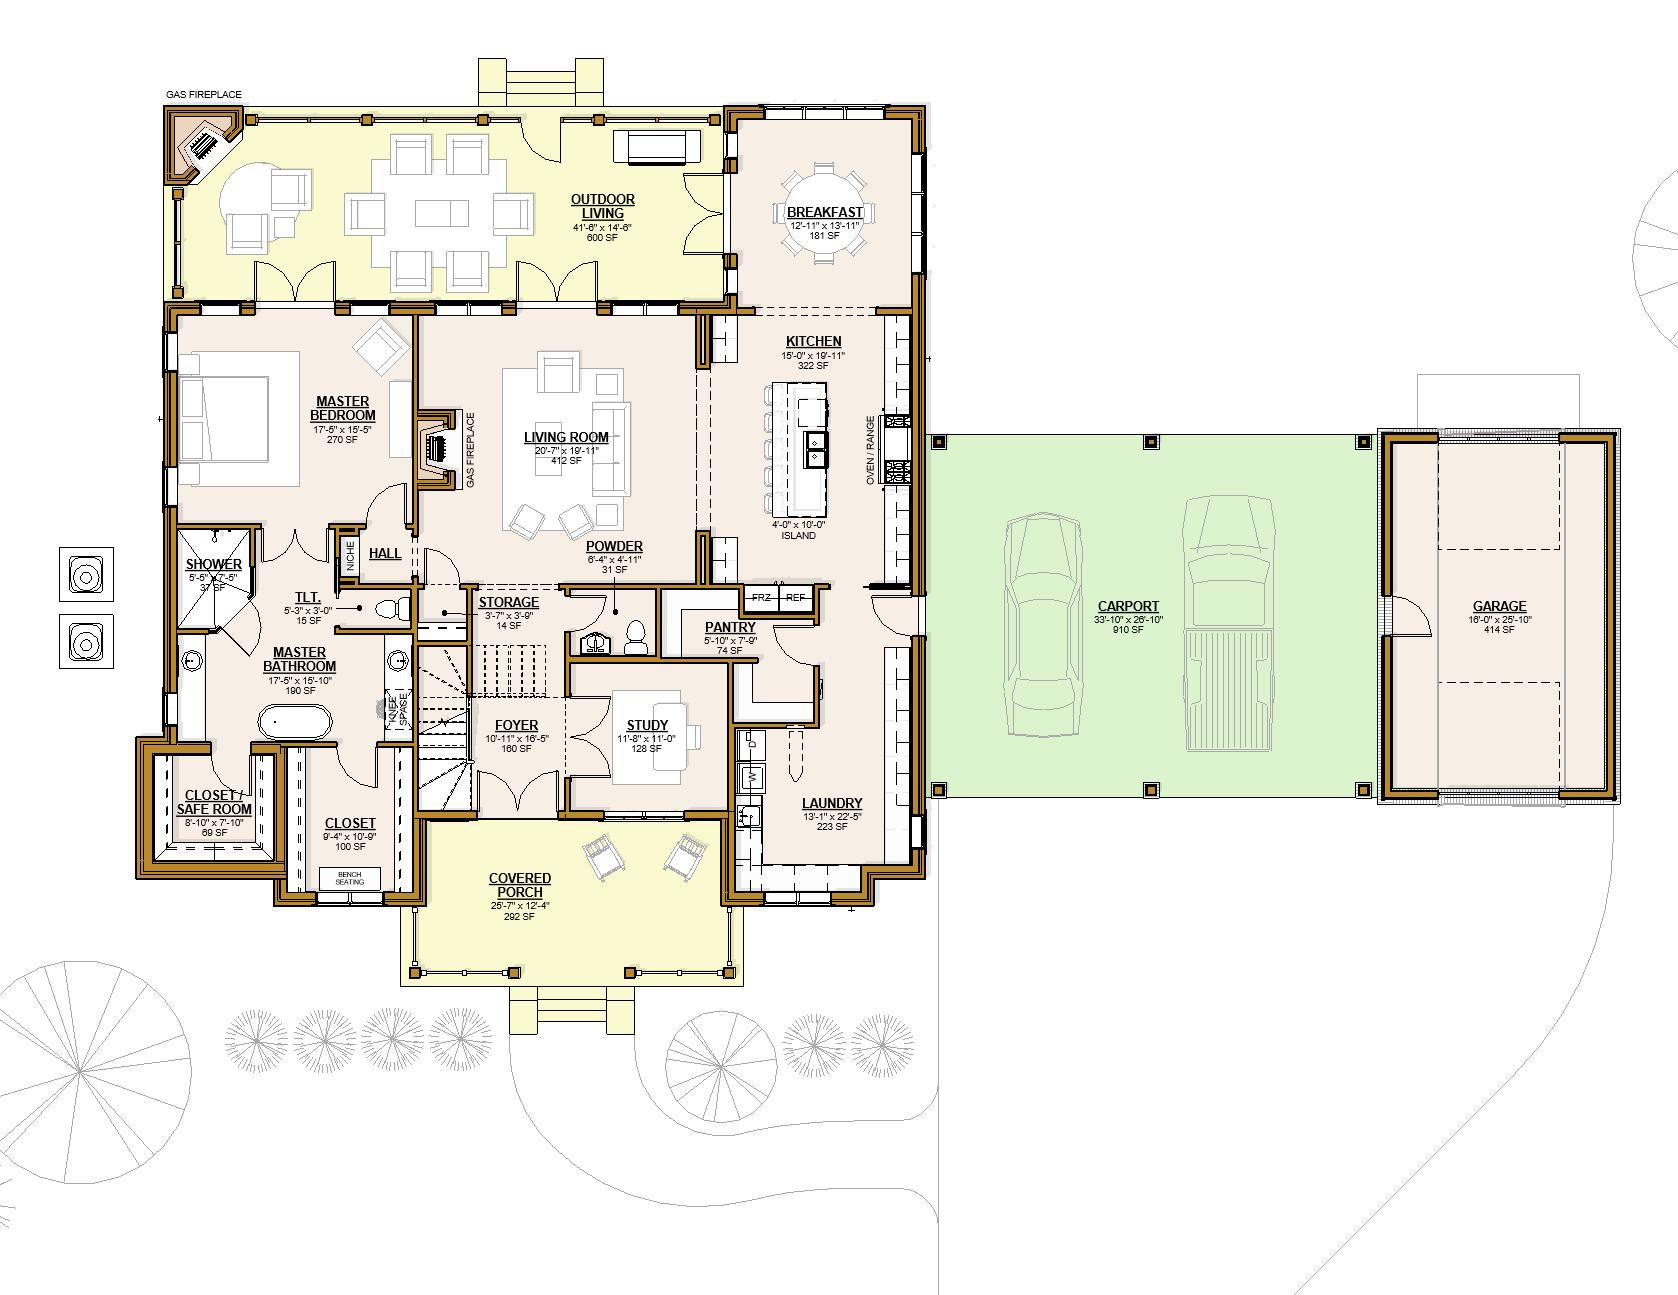 2015 - Floor Plan - Level 1 - Pres